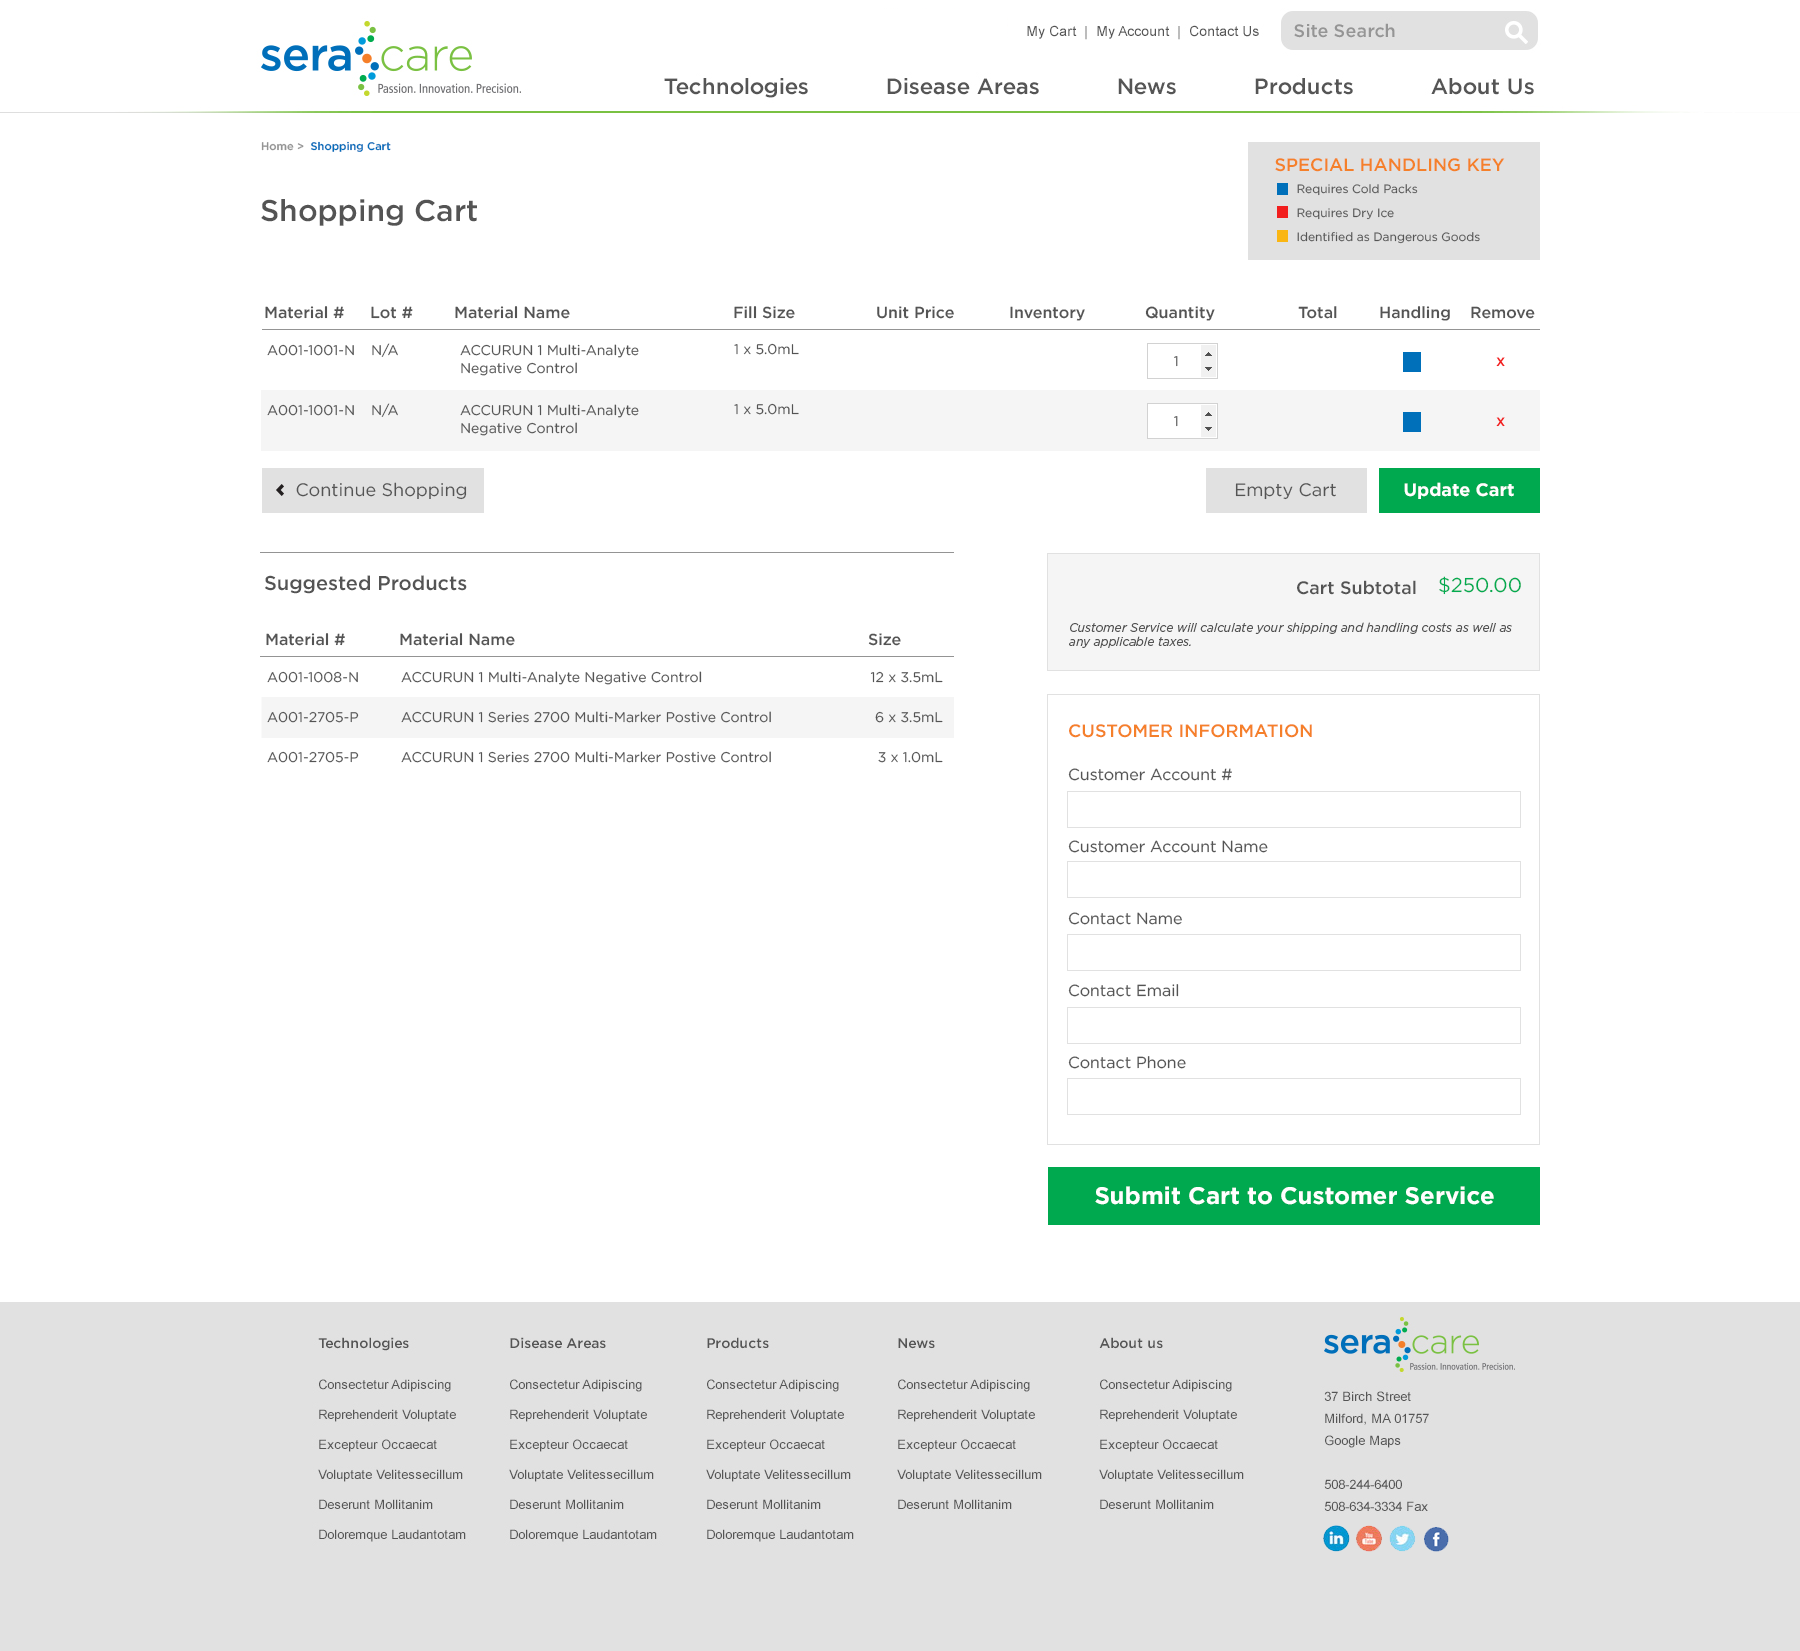 SeraCare Website